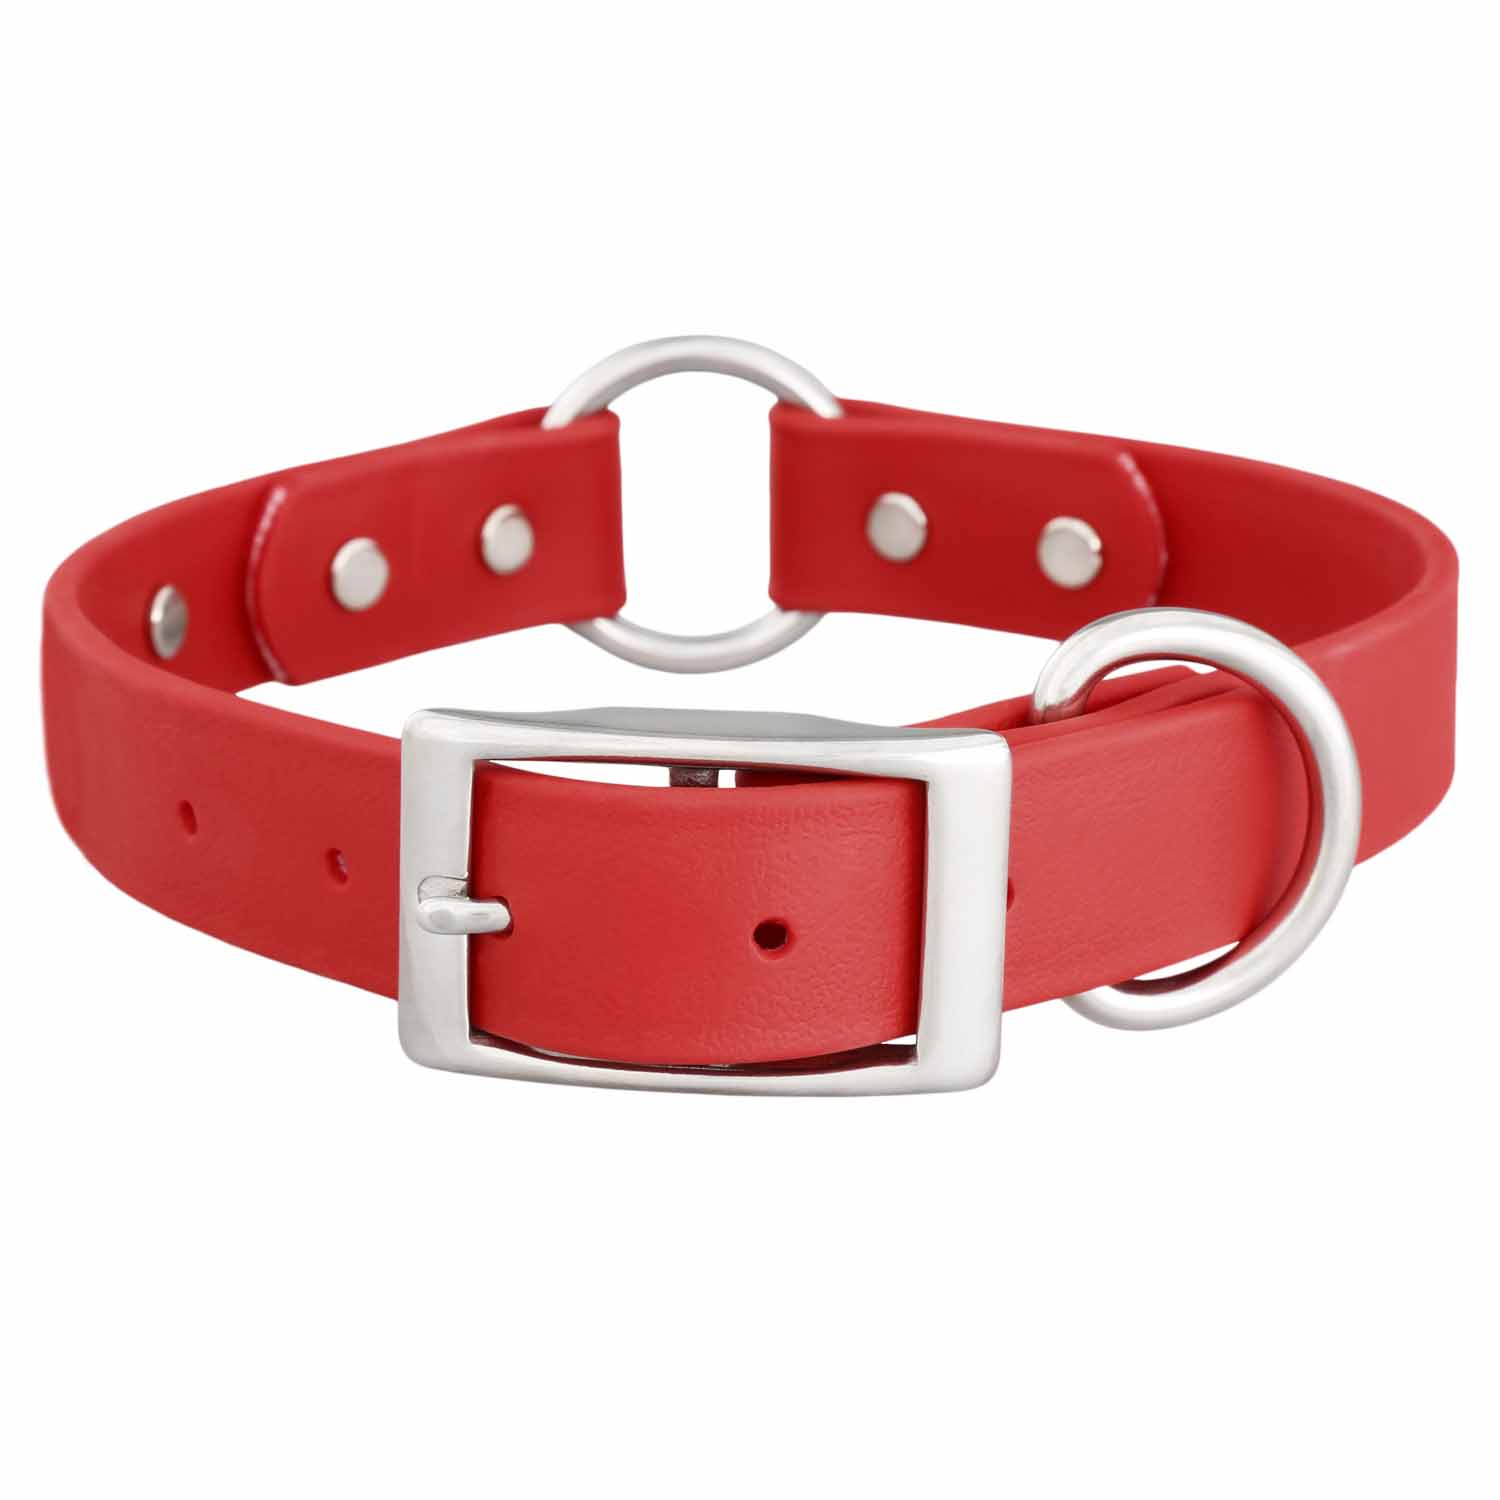 Waterproof Safety Dog Collar - Red